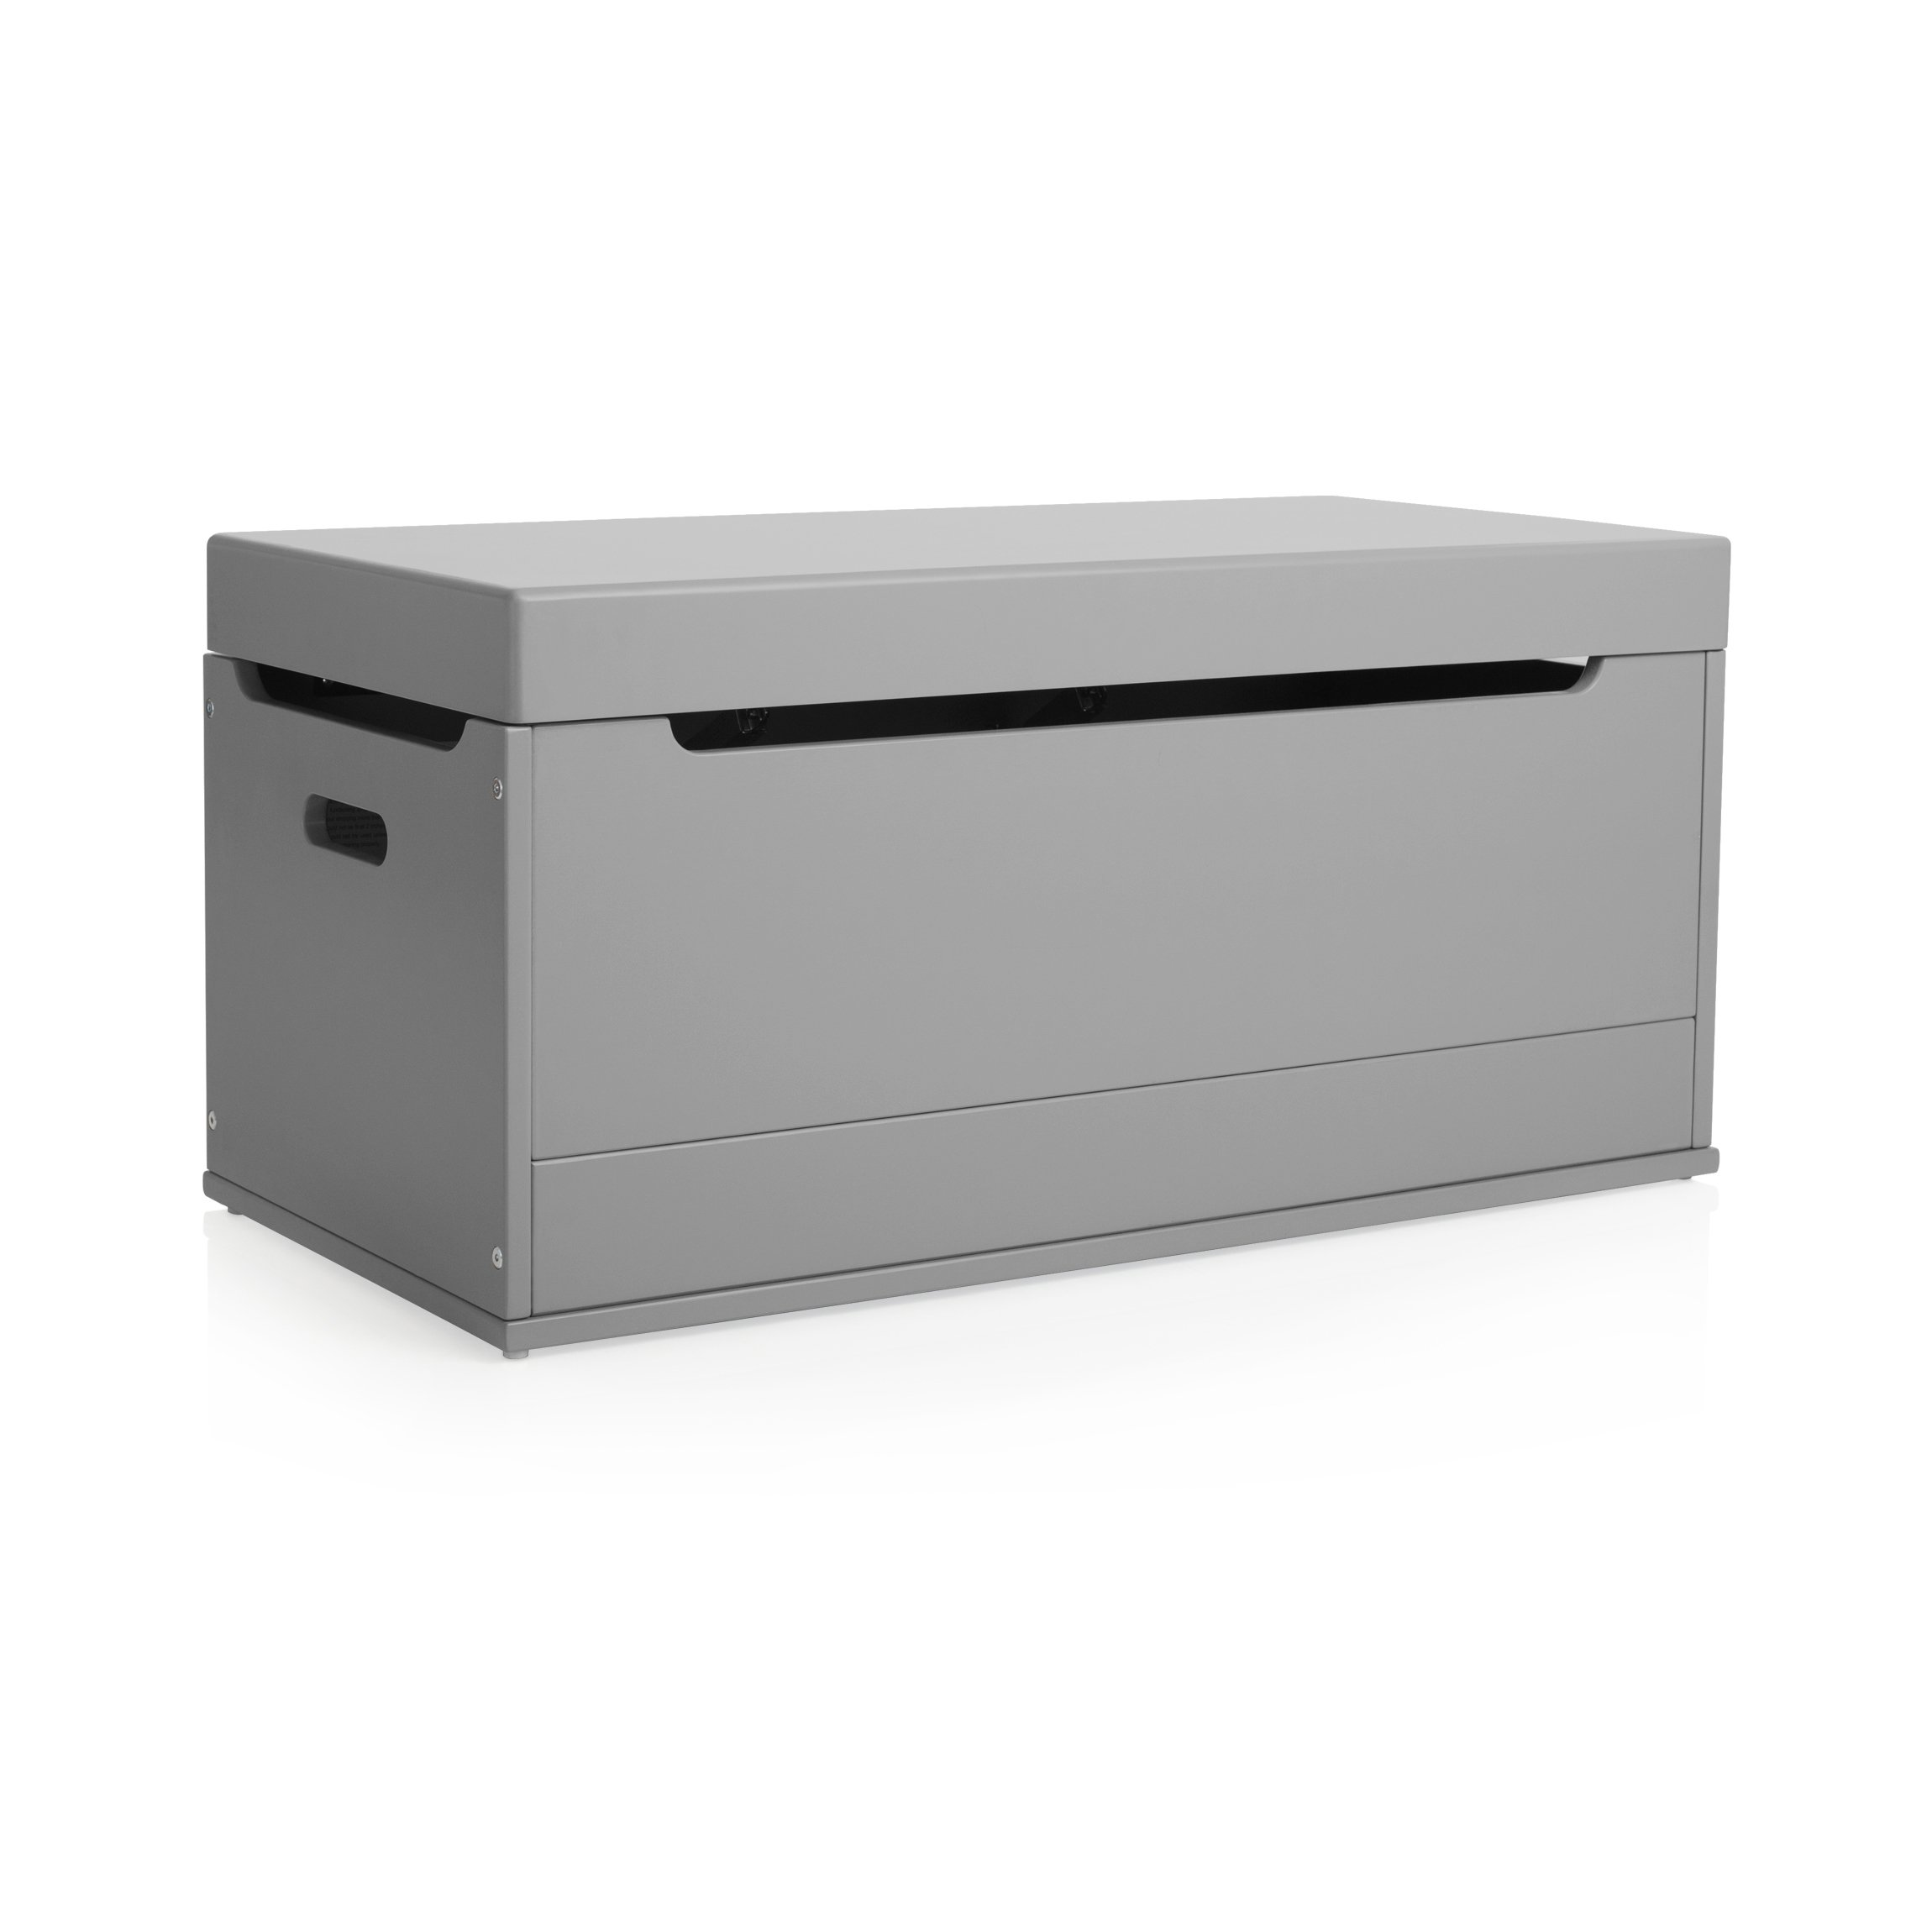 Guidecraft Brooklyn Toy Box Charcoal - Kids' Toy Chest, Trunk, Storage Furniture